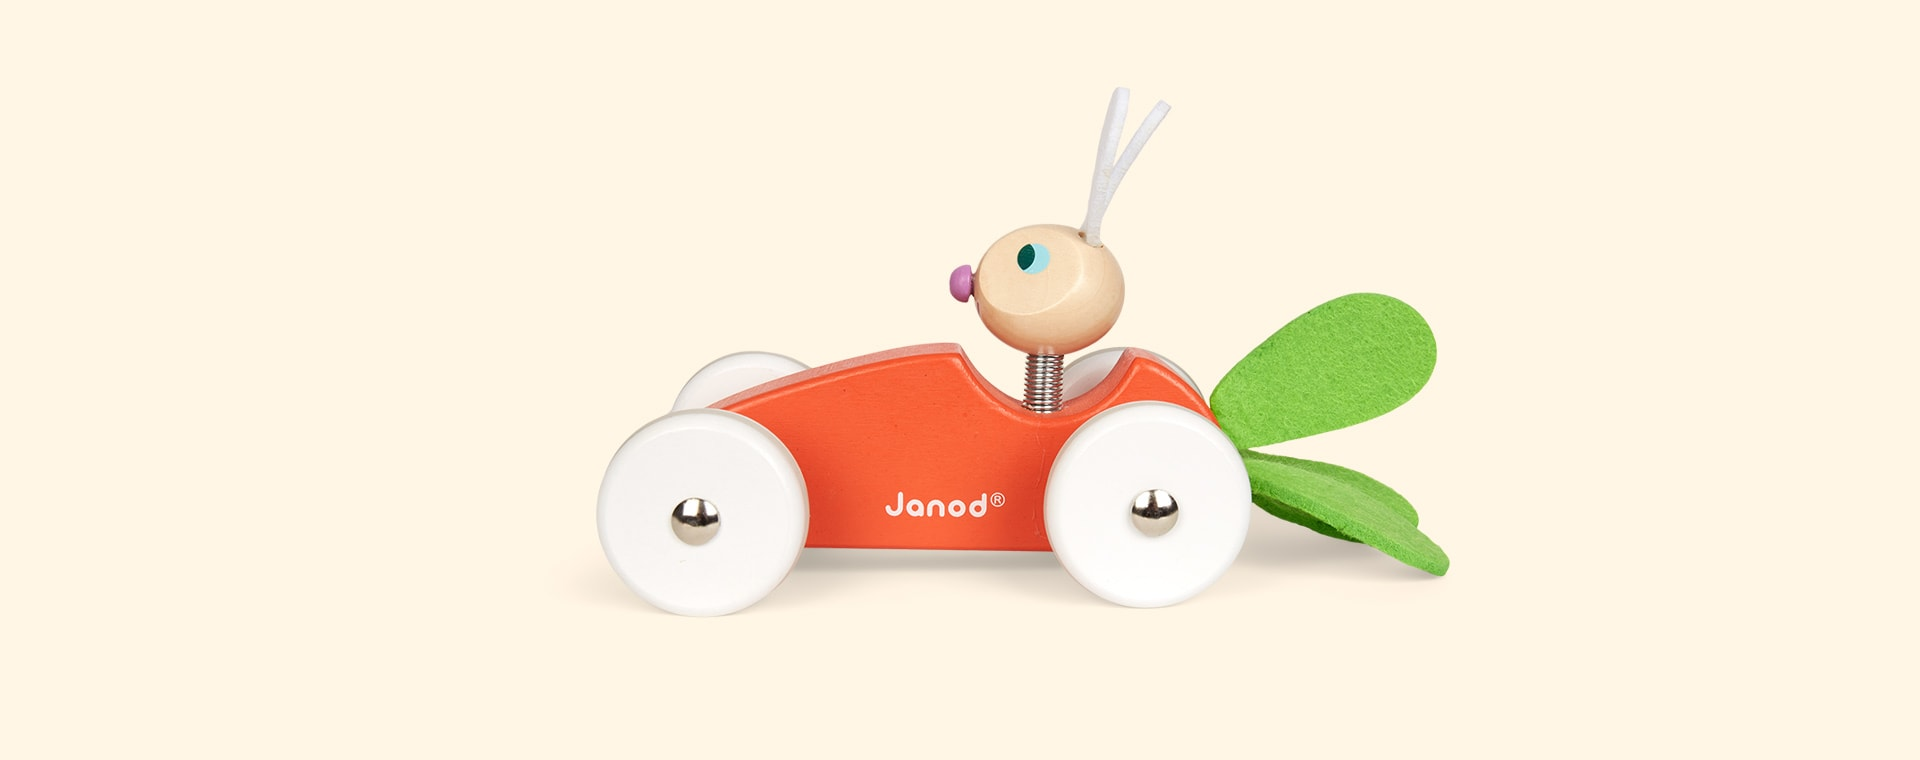 Orange Janod Carrot Car